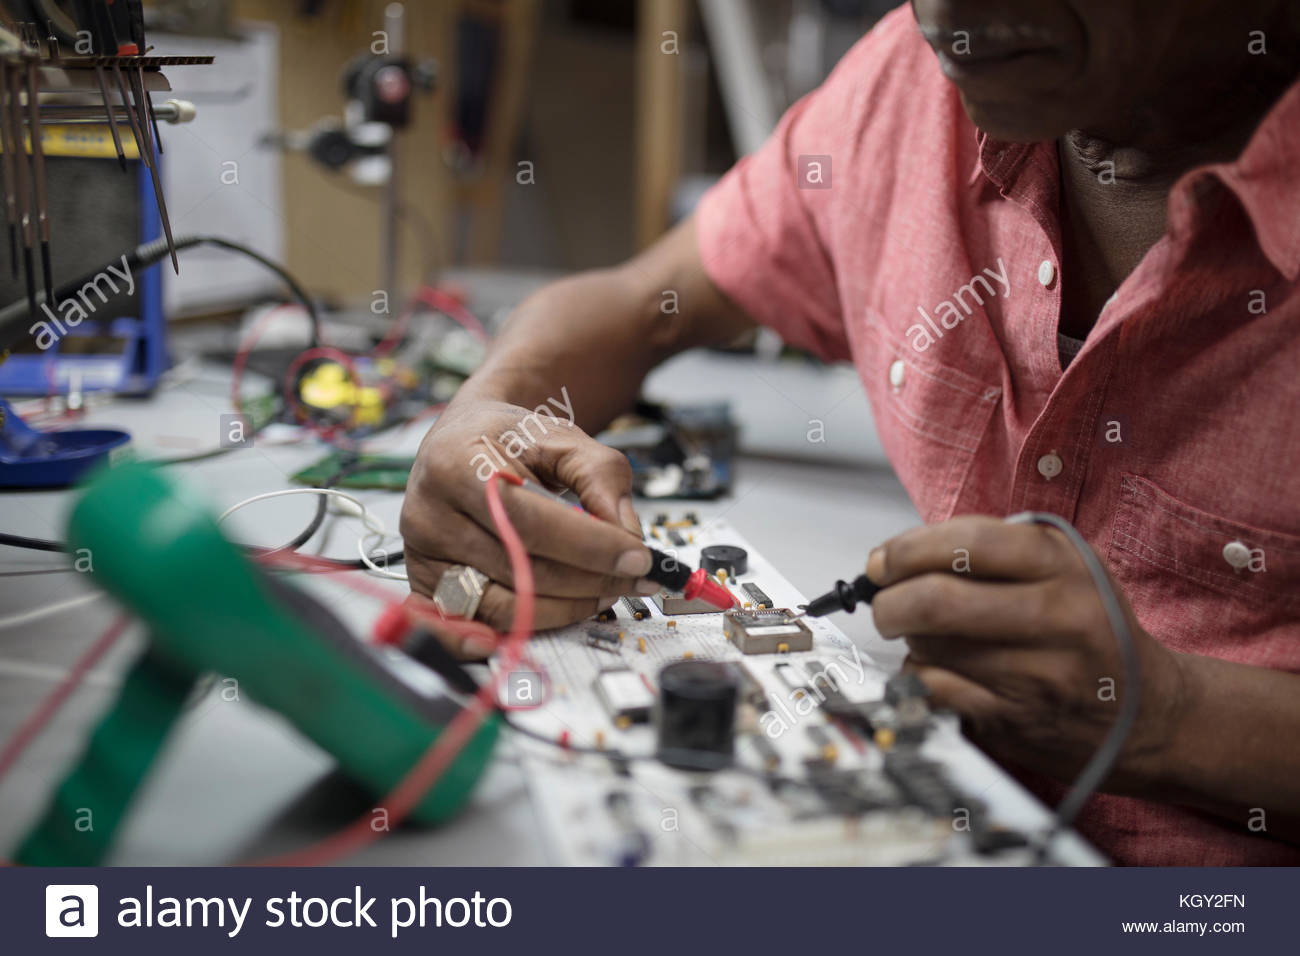 Person Soldering Stock Photos Images Alamy Technician Repairing Electronic Circuit Board With Iron Close Up Male Engineer Using On Electronics Image